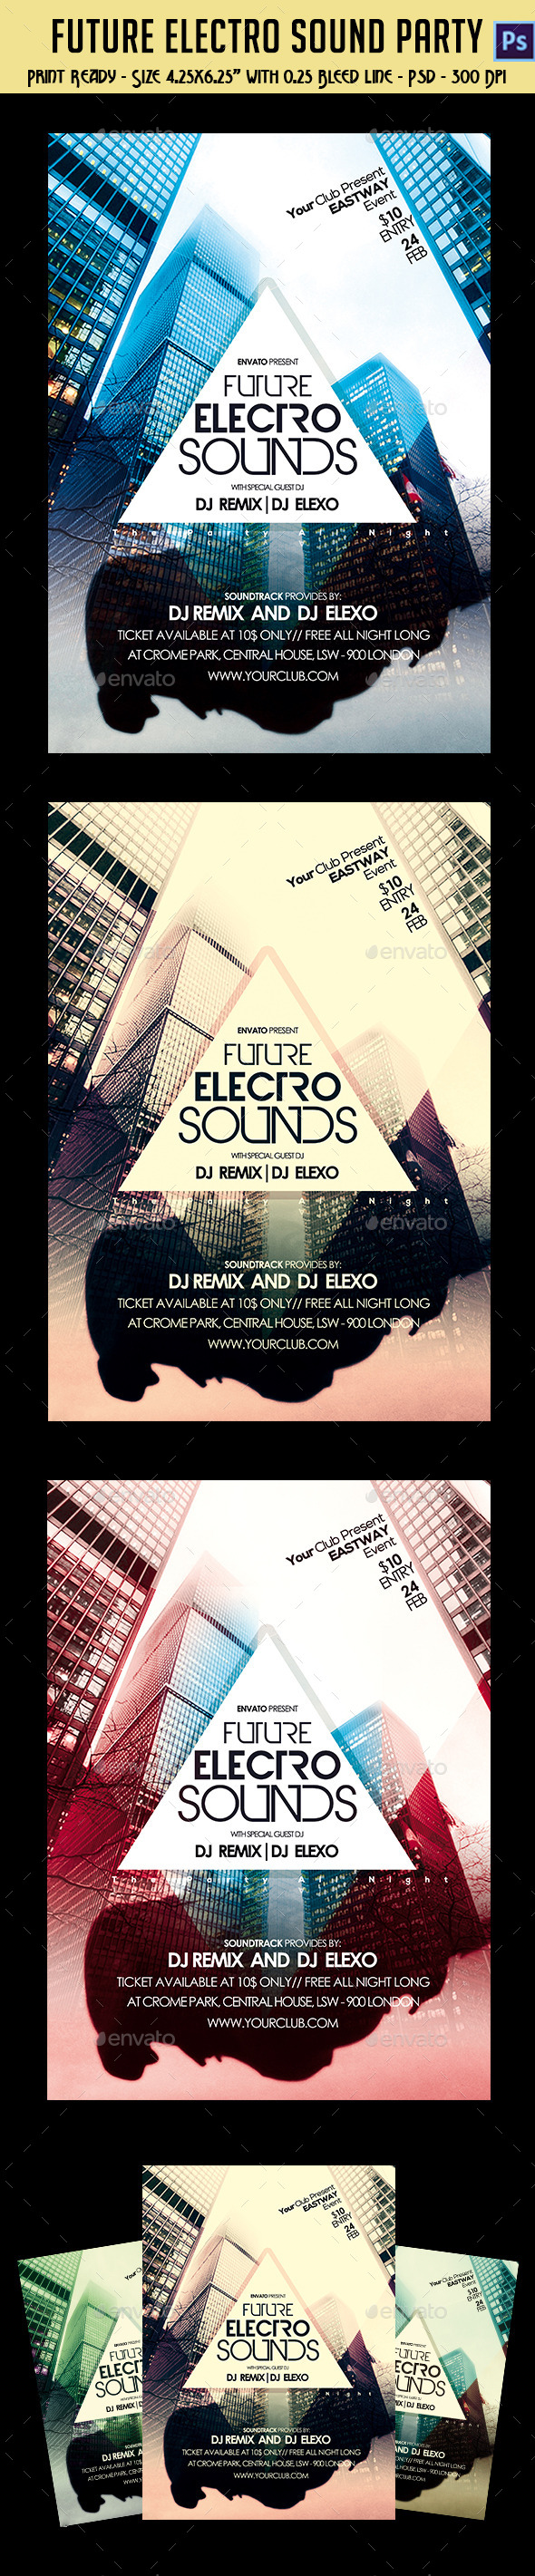 GraphicRiver Future Electro Sounds Party Flyer 10237310